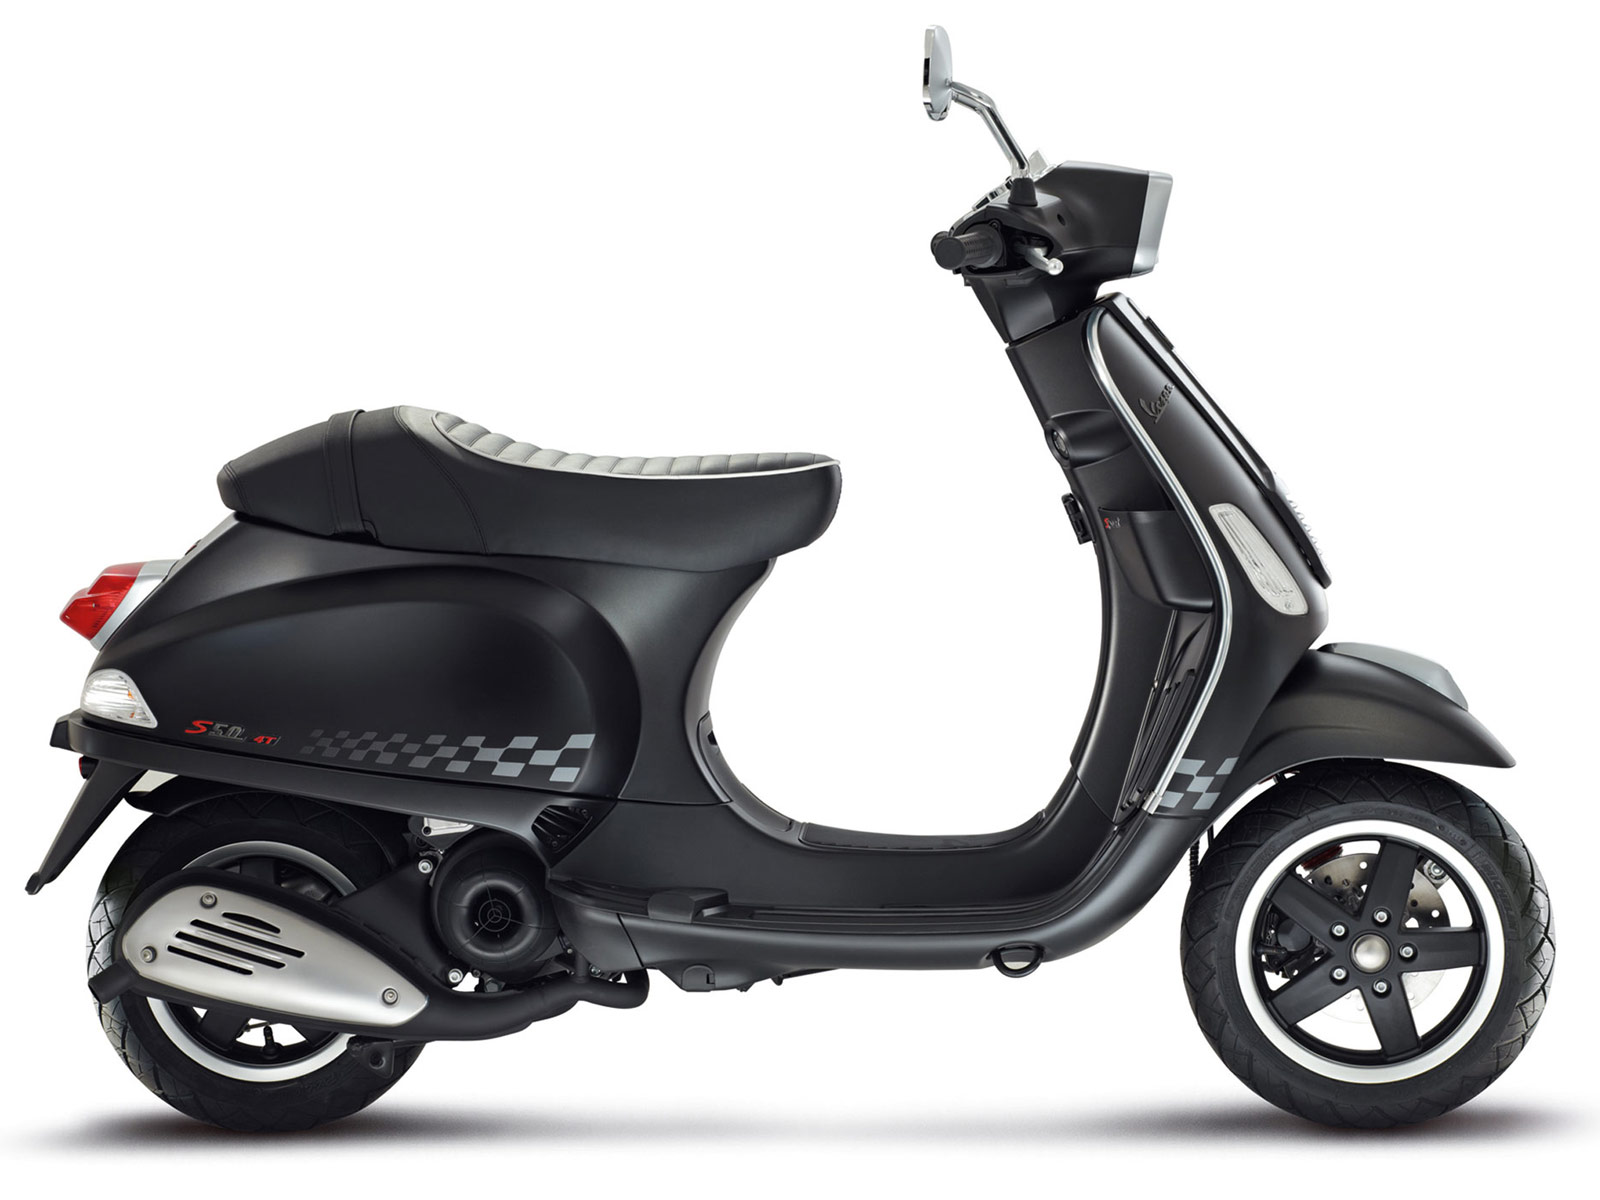 2012 vespa s125 scooter insurance information. Black Bedroom Furniture Sets. Home Design Ideas